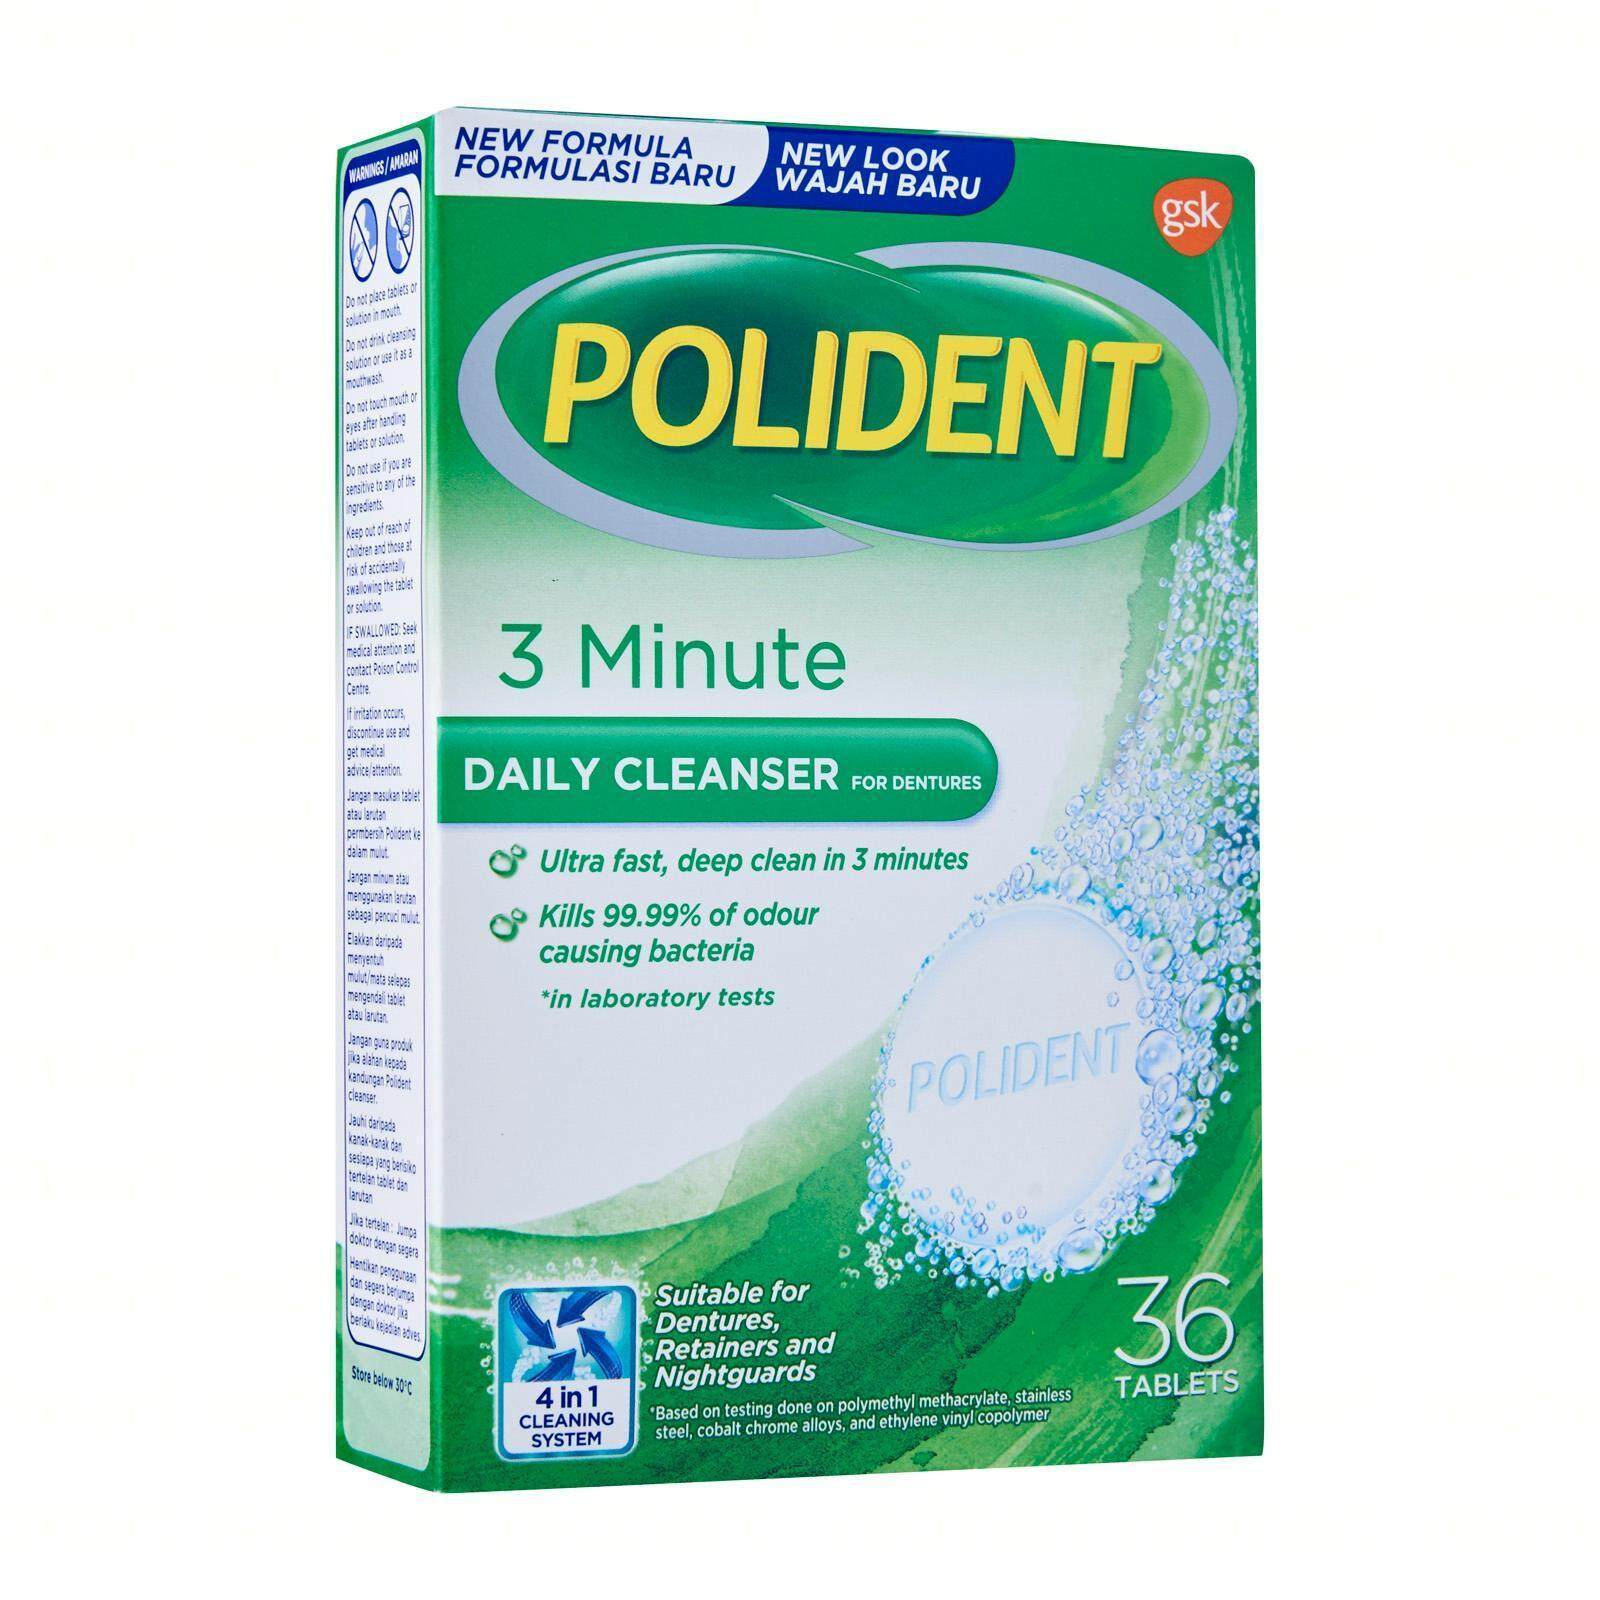 Polident 3 Minute Daily Cleanser 36's tablets